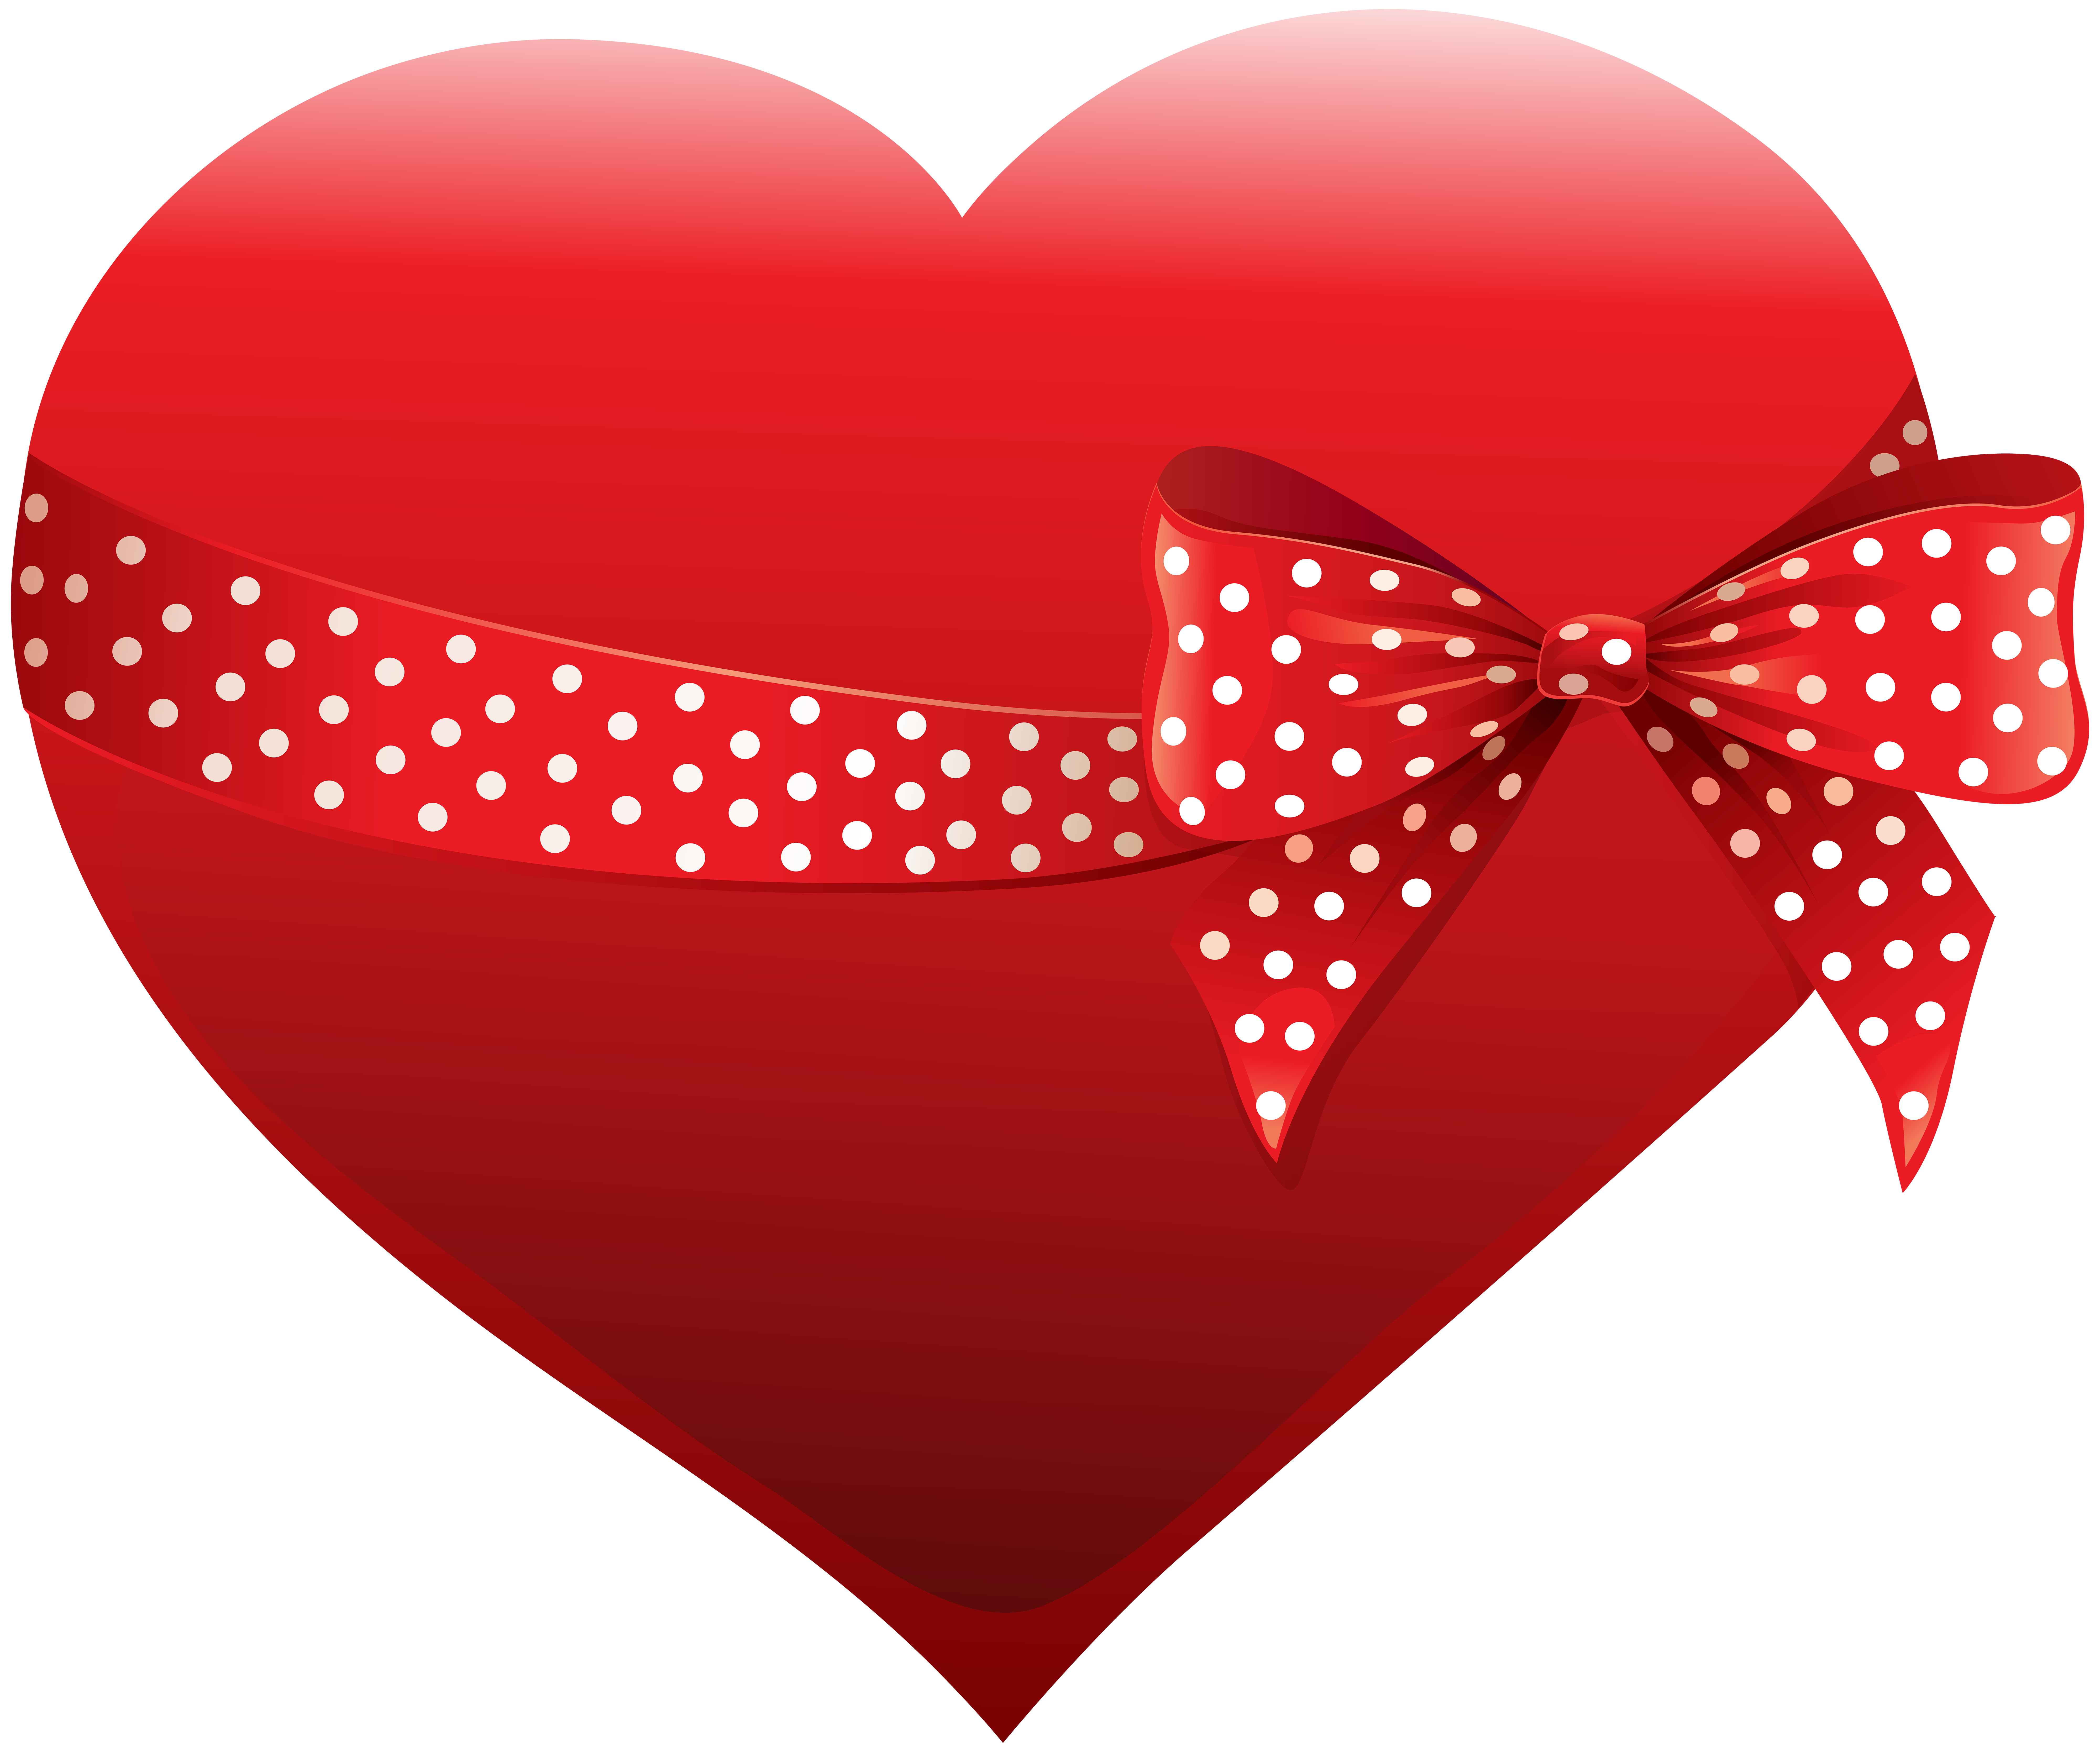 Heart fire clipart jpg freeuse Heart with Bow Transparent Clip Art Image | Gallery Yopriceville ... jpg freeuse